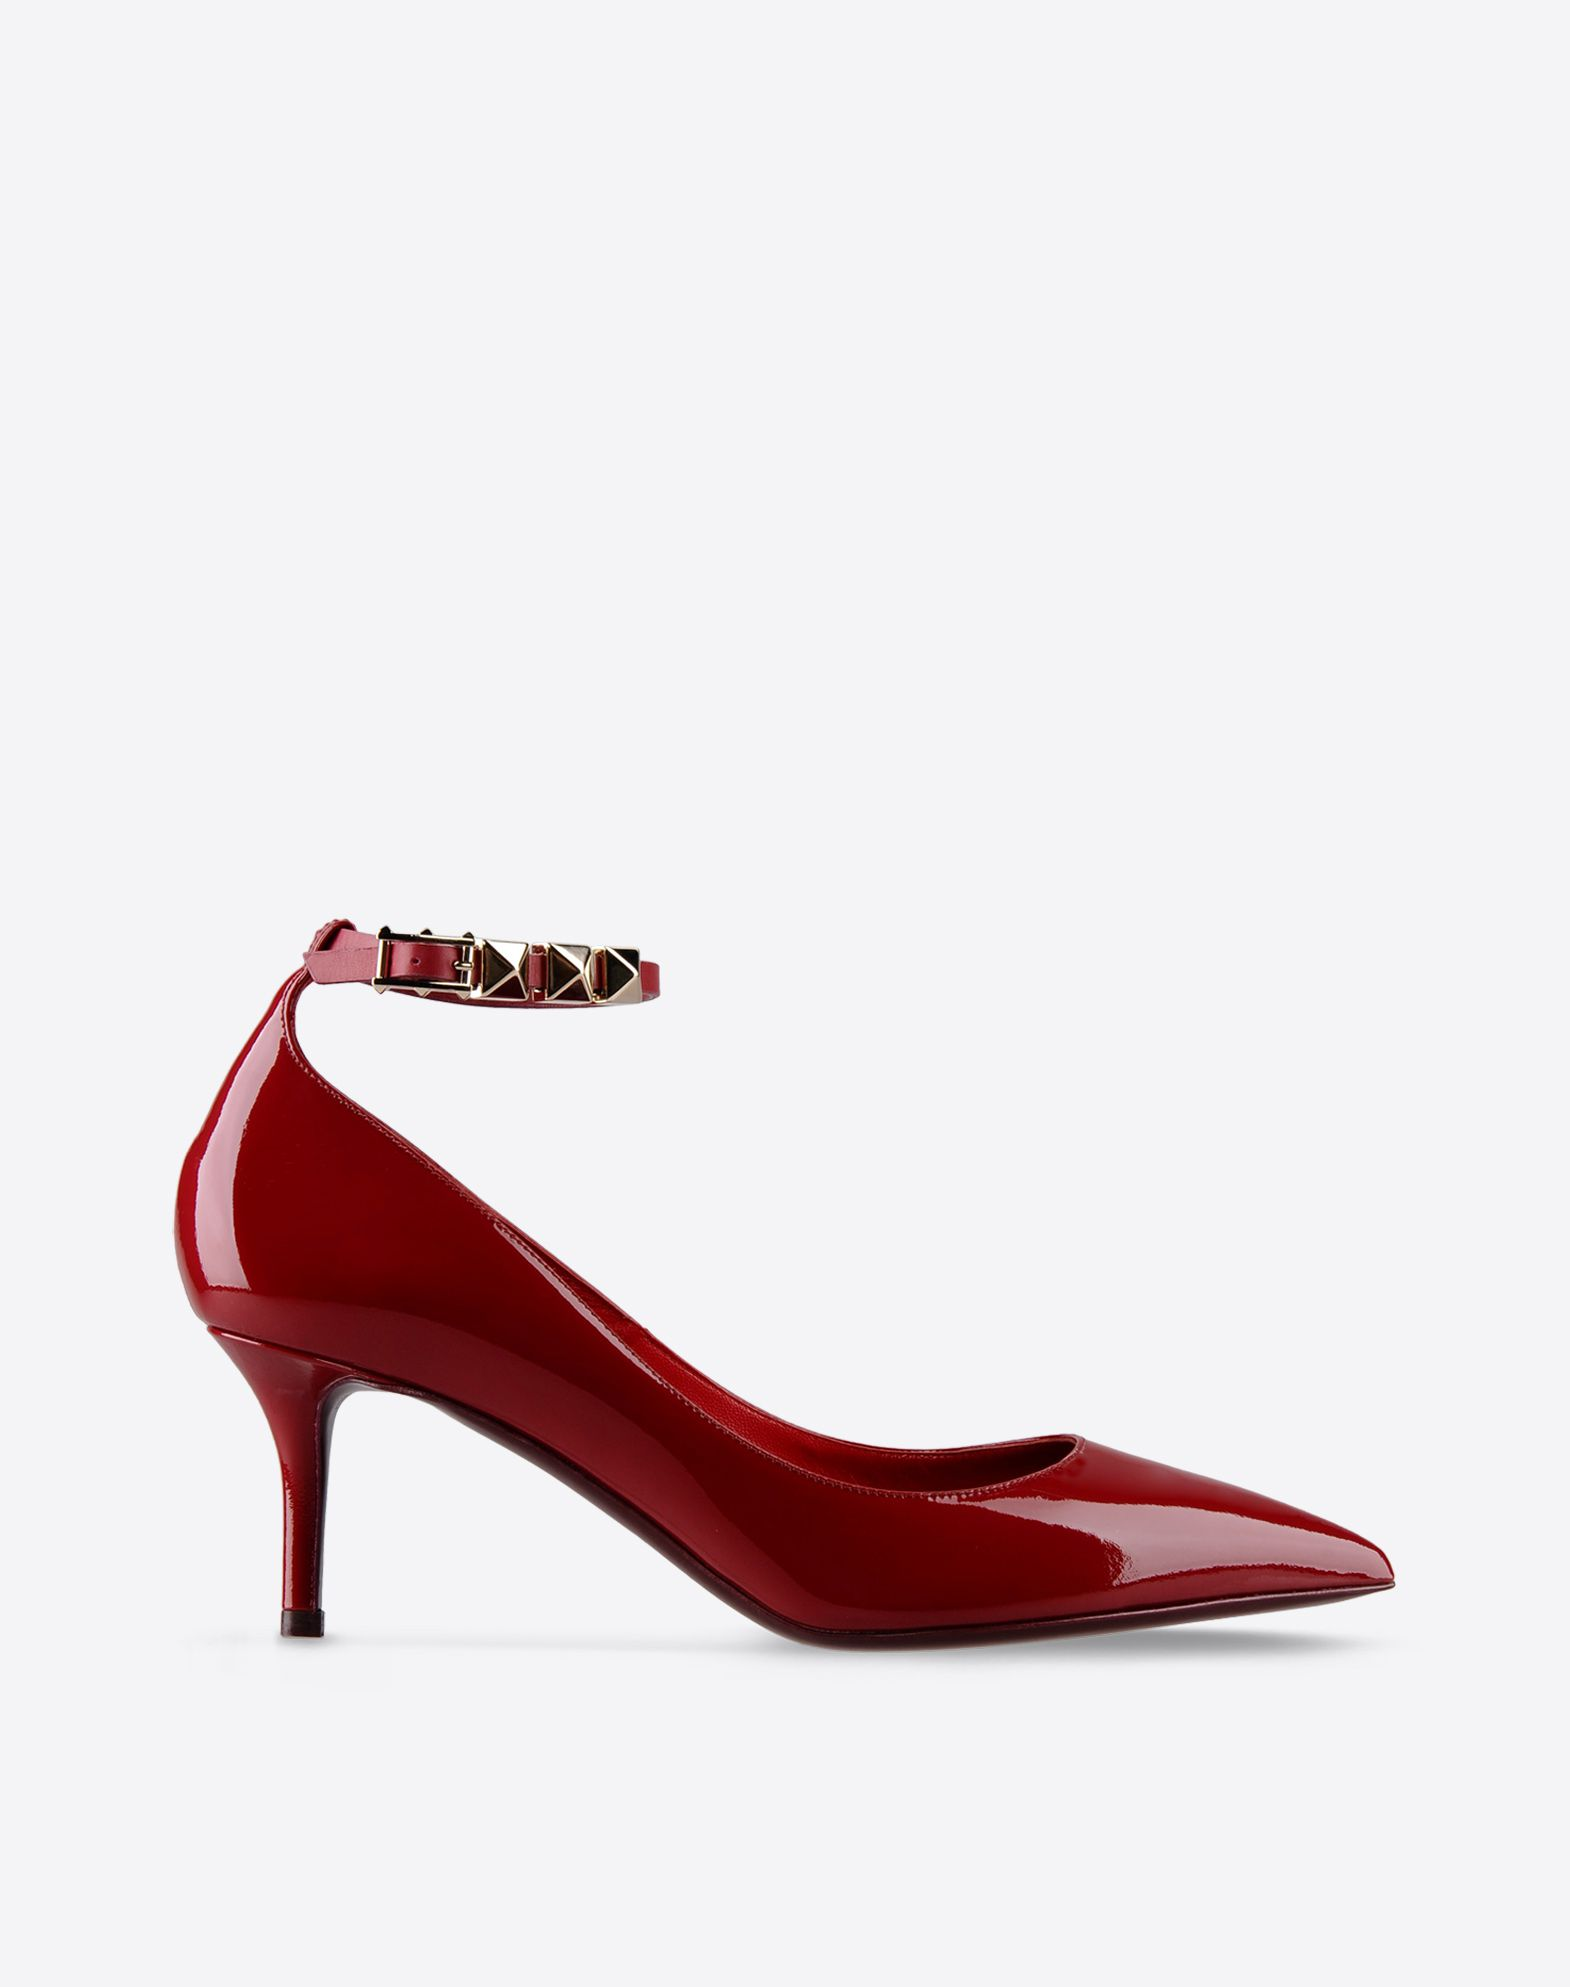 VALENTINO Varnished effect Studs Solid color Buckling ankle strap closure Leather sole Narrow toeline Covered heel  44655628dh